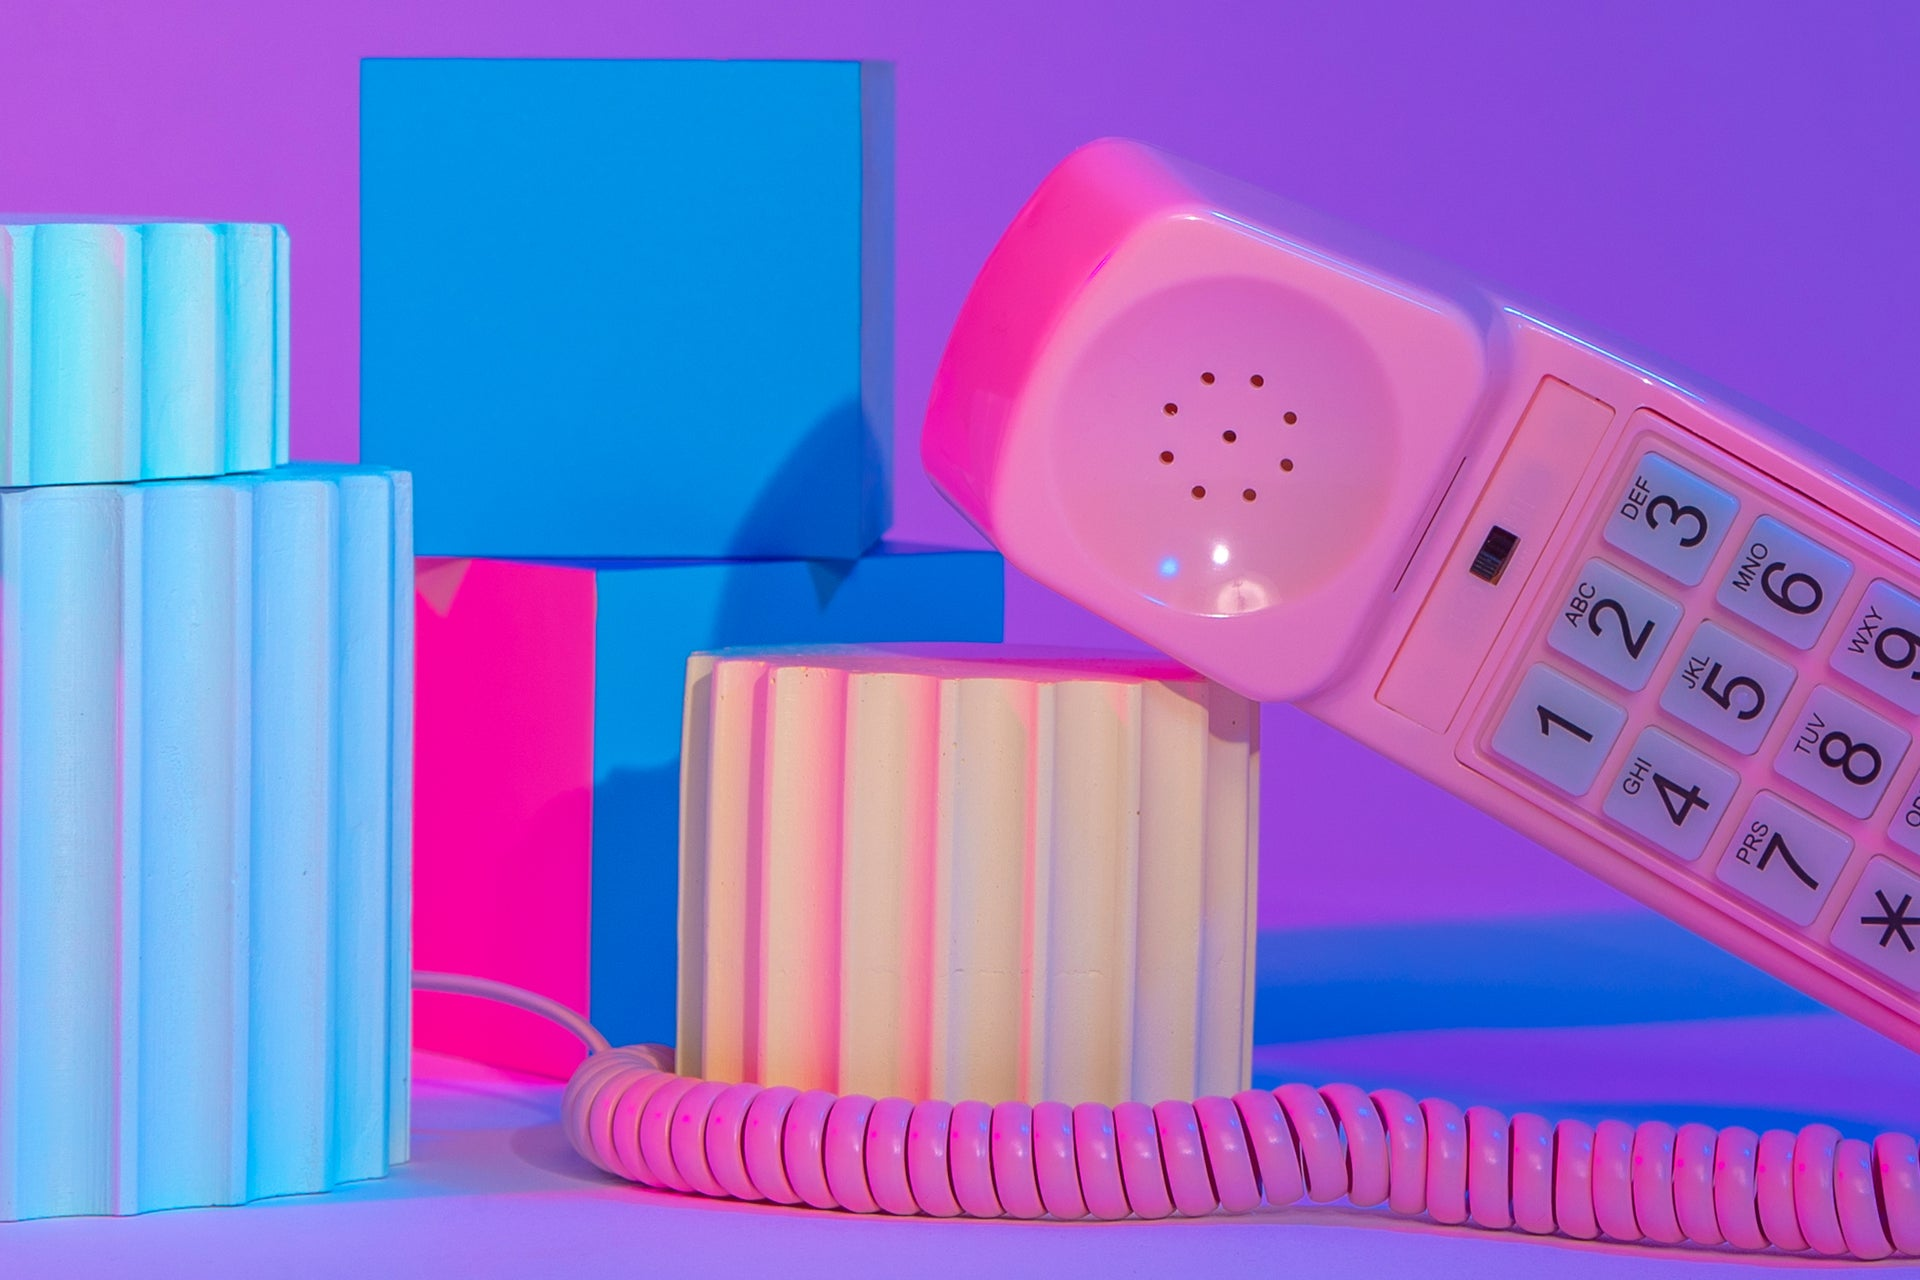 Multi-color background with pink phone | Kinship